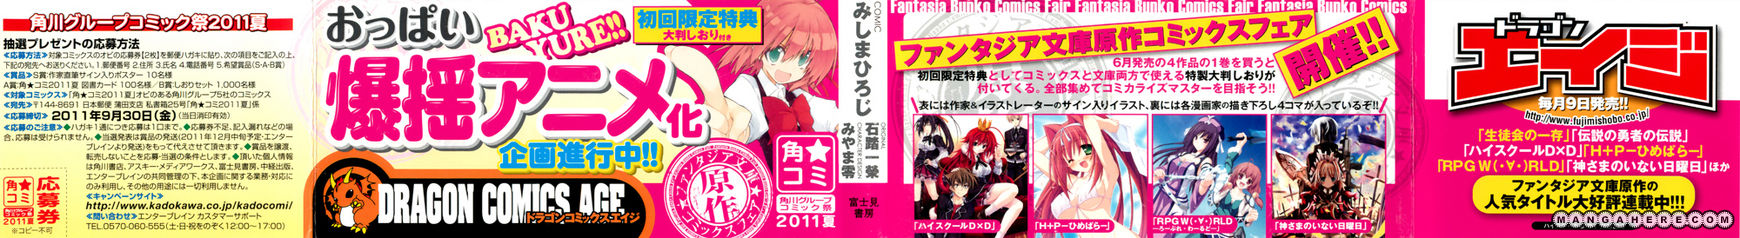 High-School DxD 1 Page 2